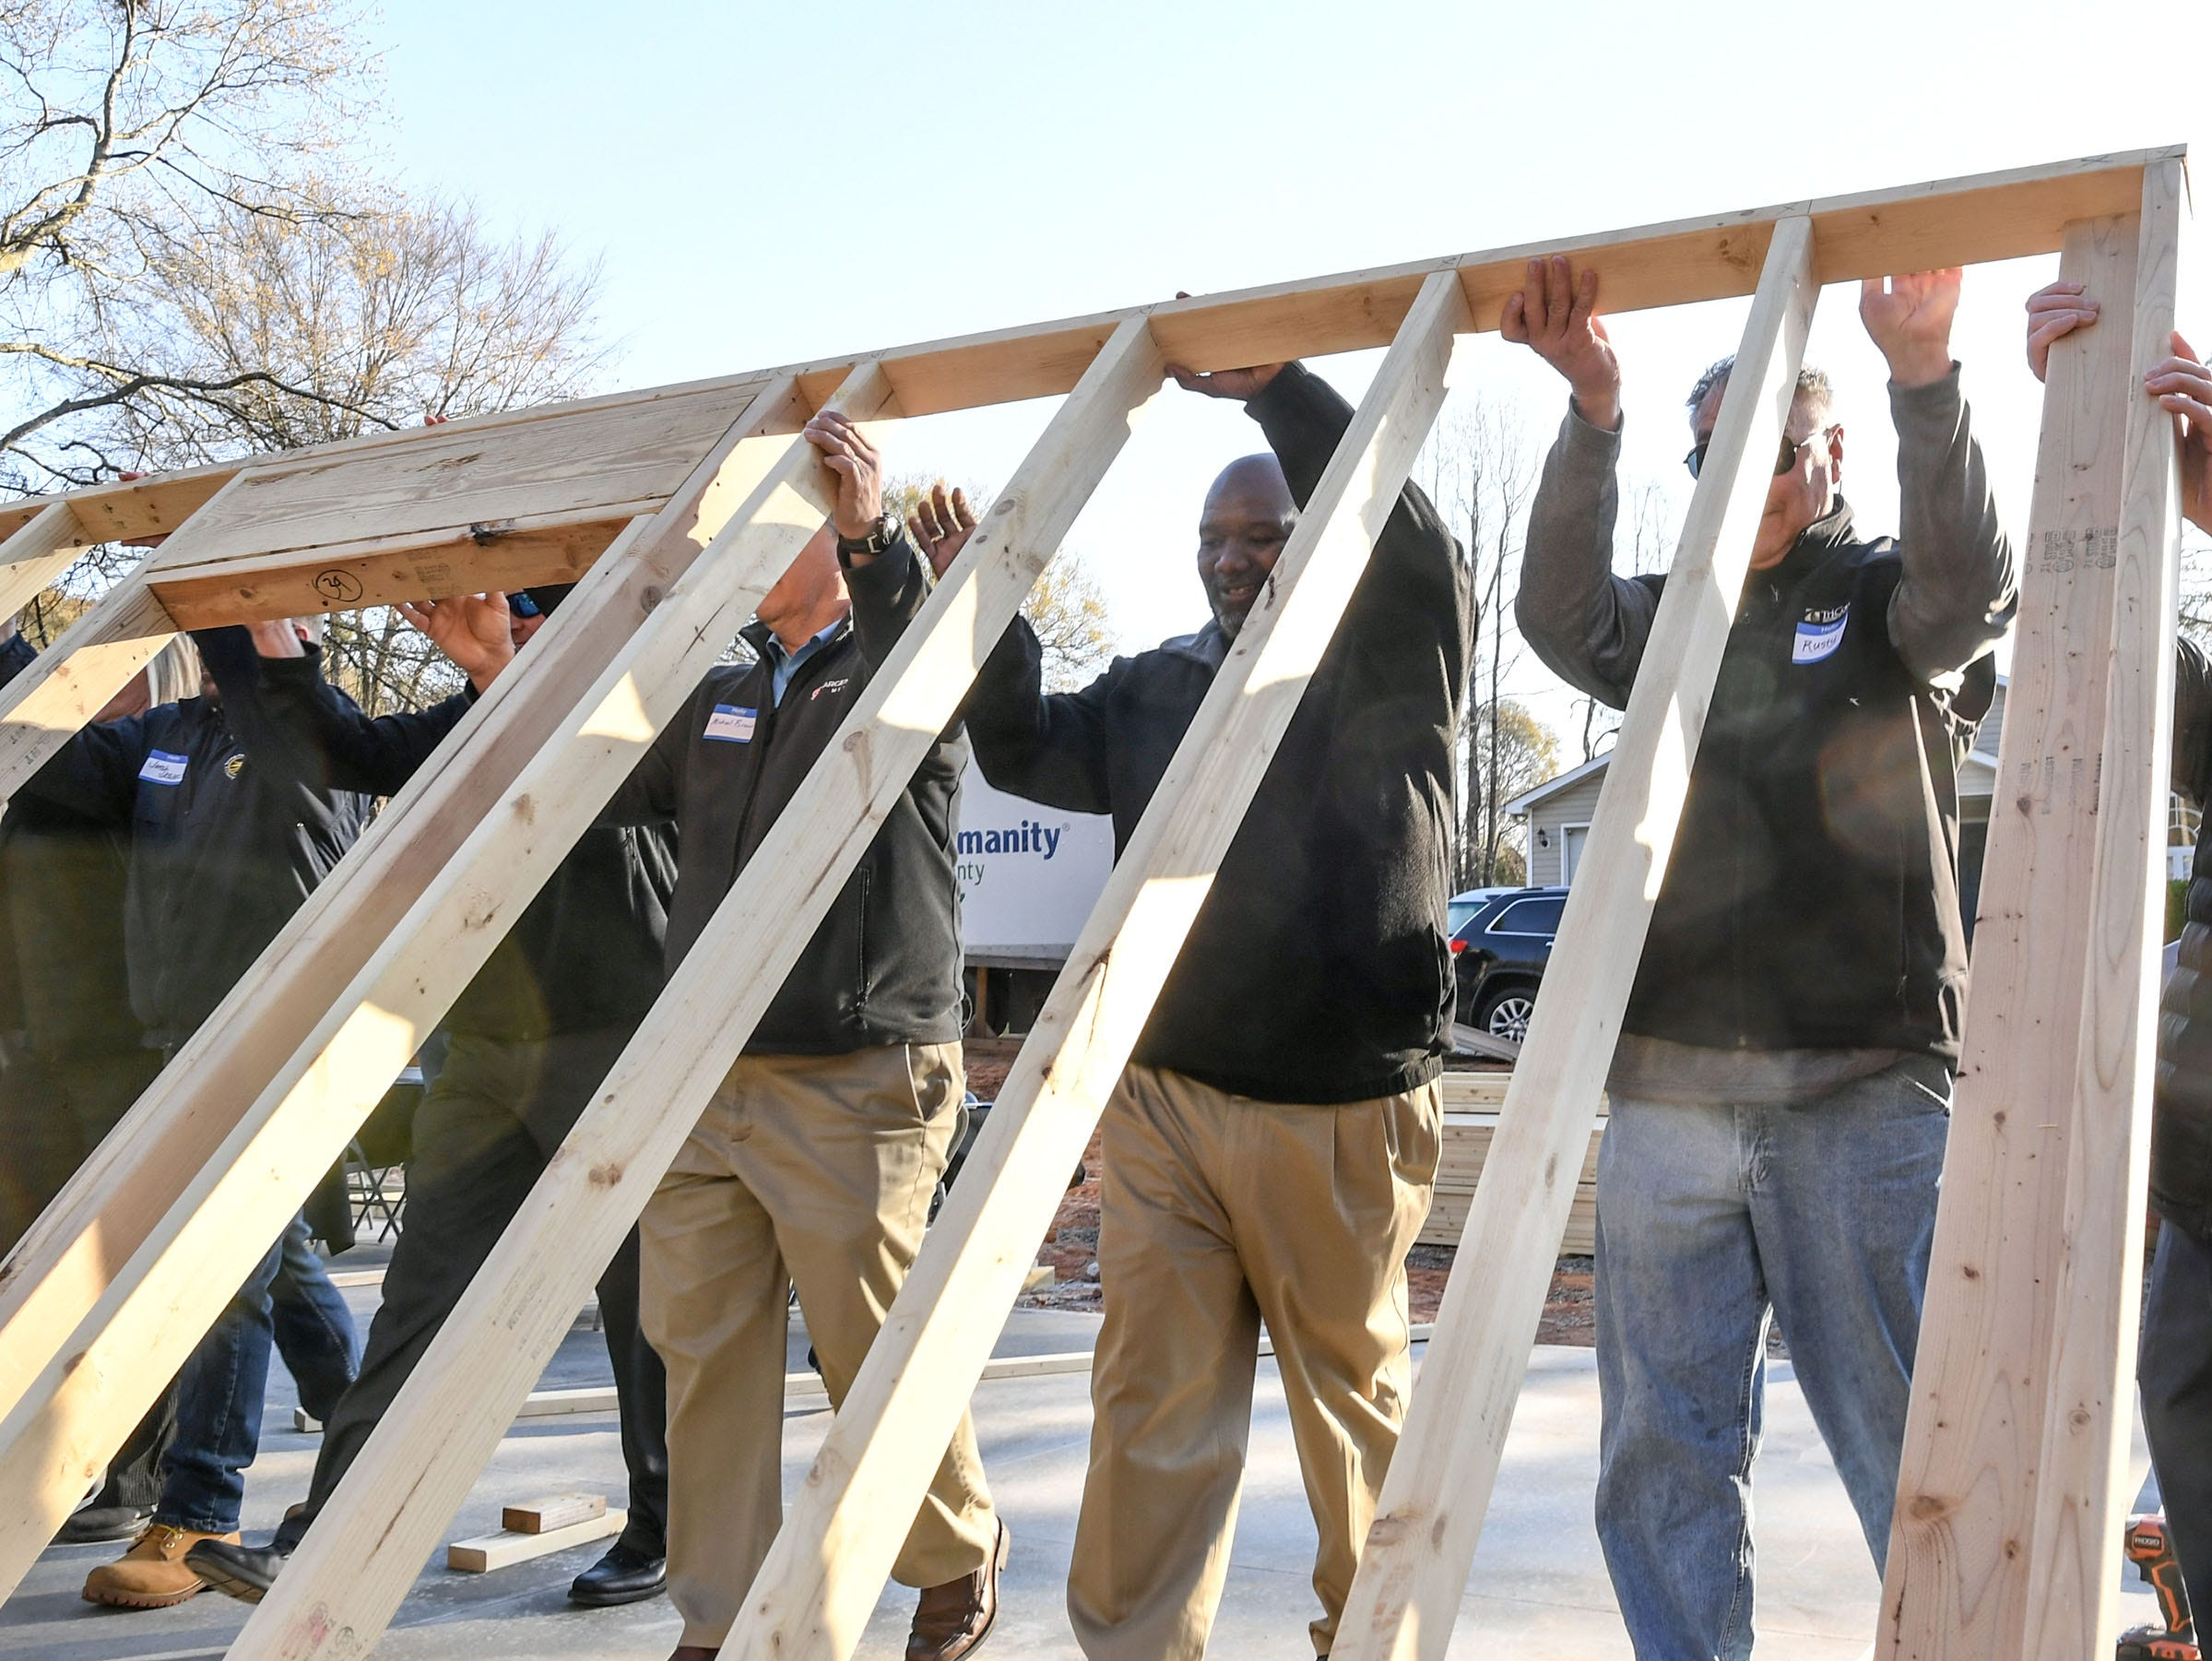 Volunteers Michael Cunningham, middle, Vice President of Community Health Partnerships for AnMed Health, and Rusty Burns, right, Anderson County administrator help raise a wall at a Habitat for Humanity of Anderson County home build for new homeowner recipient Victoria Santos in Anderson Thursday. The home is the eighth on Melrose Place in Anderson since Clemson football players, including Deshaun Watson, helped built the first in the fall of 2015.